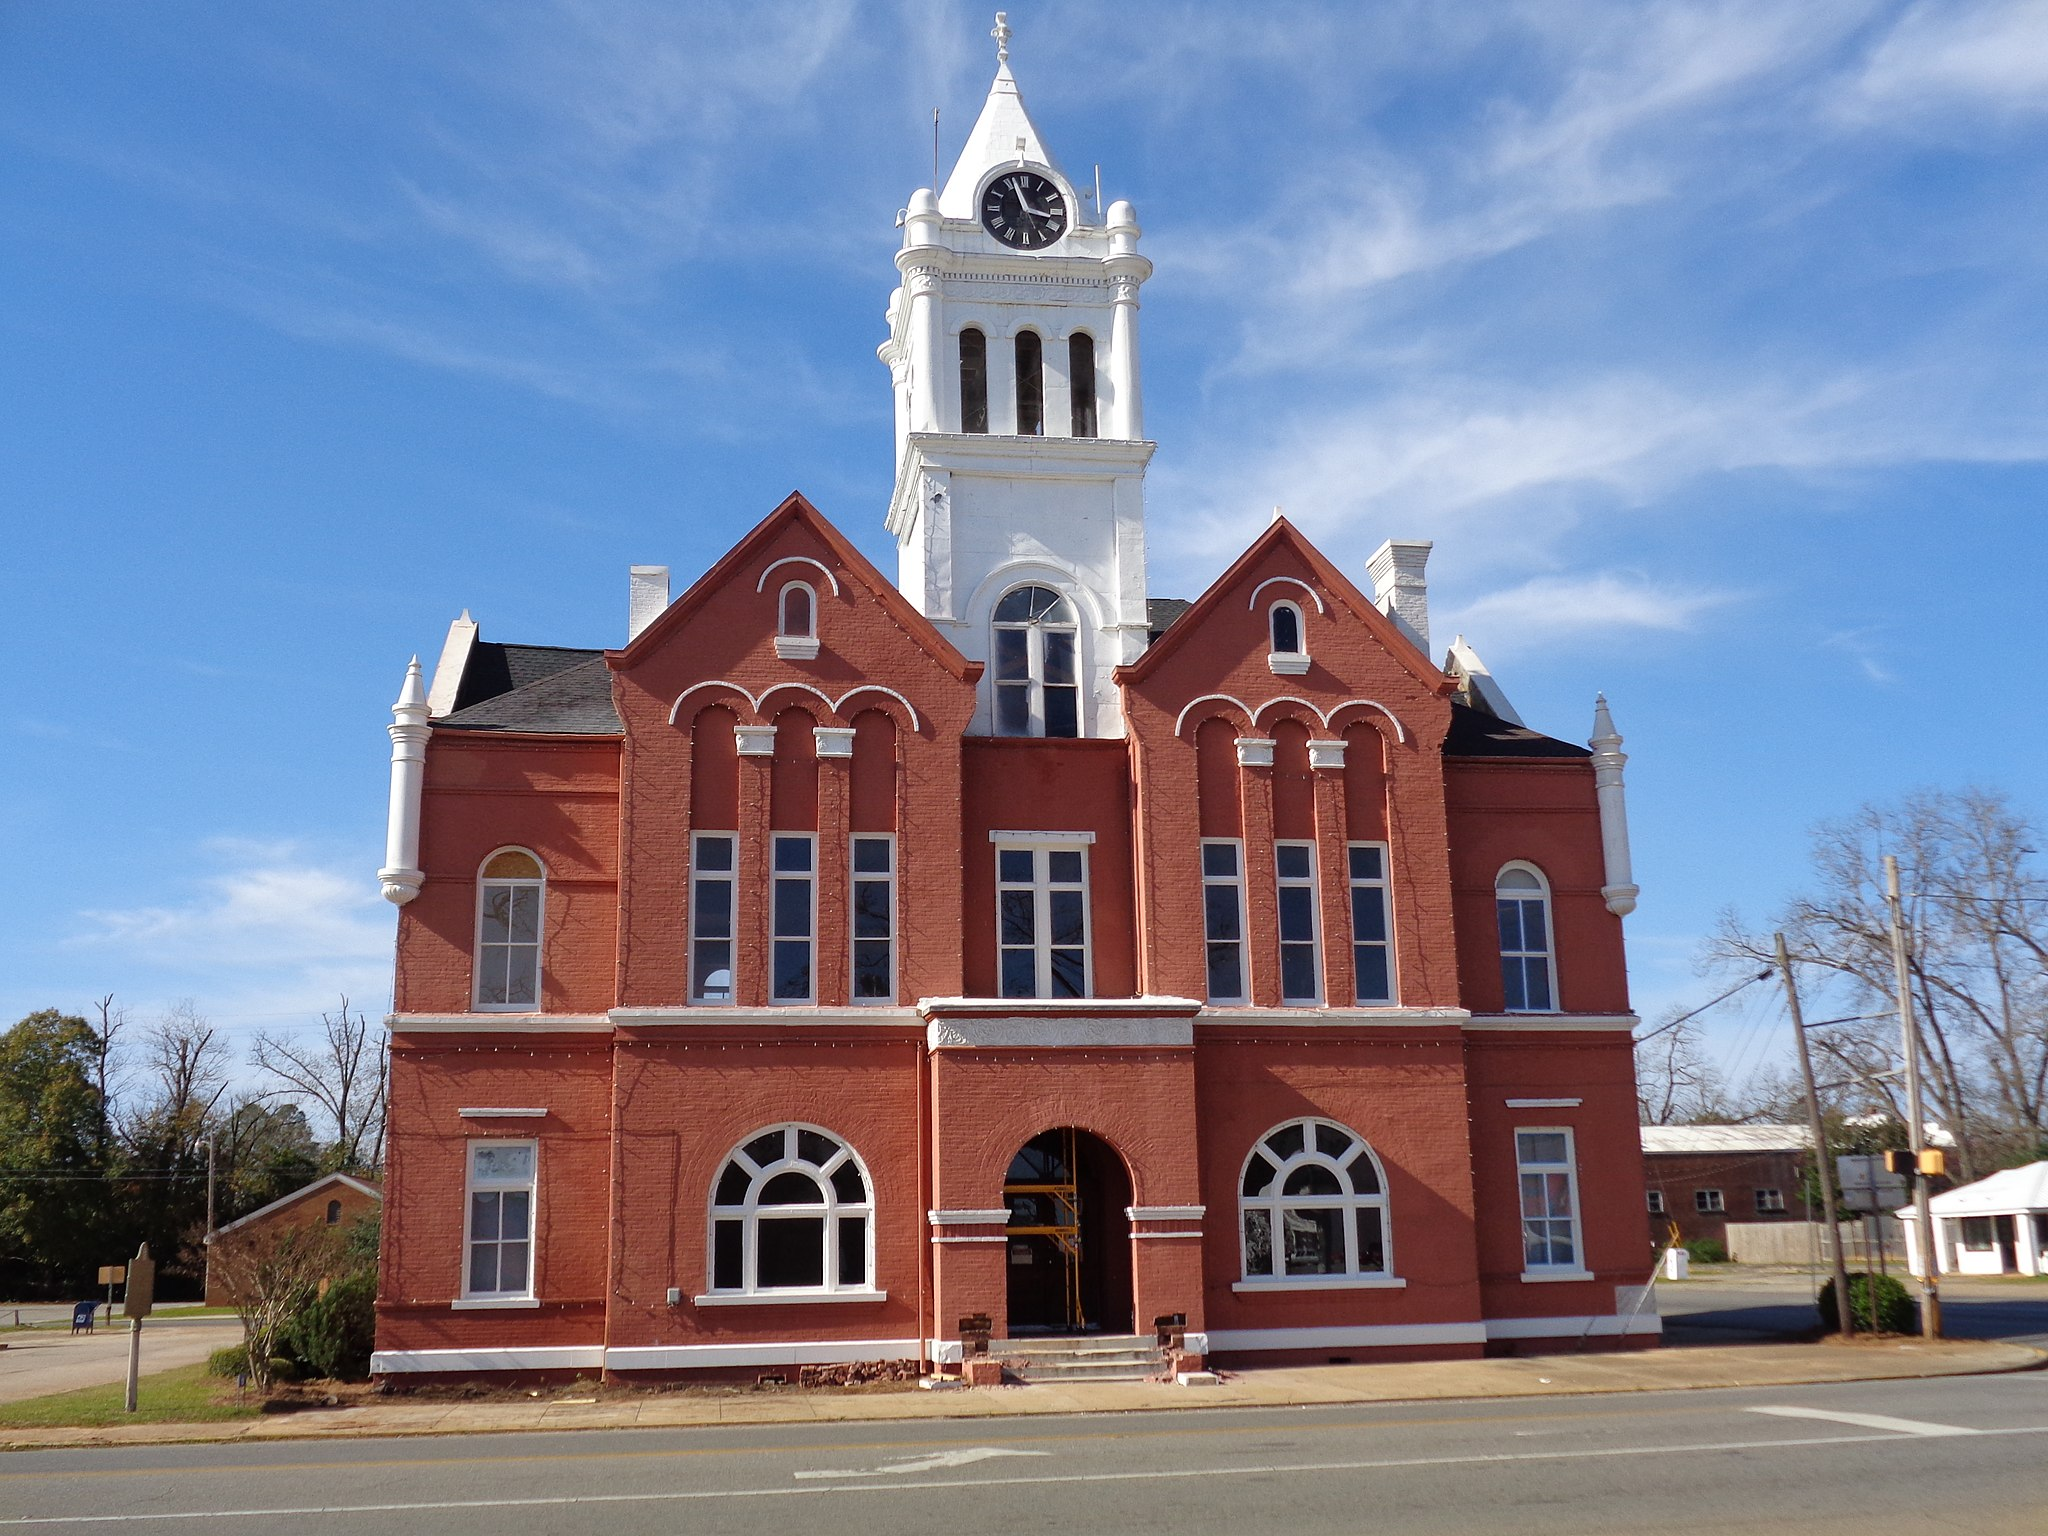 Schley County Courthouse, Ellaville